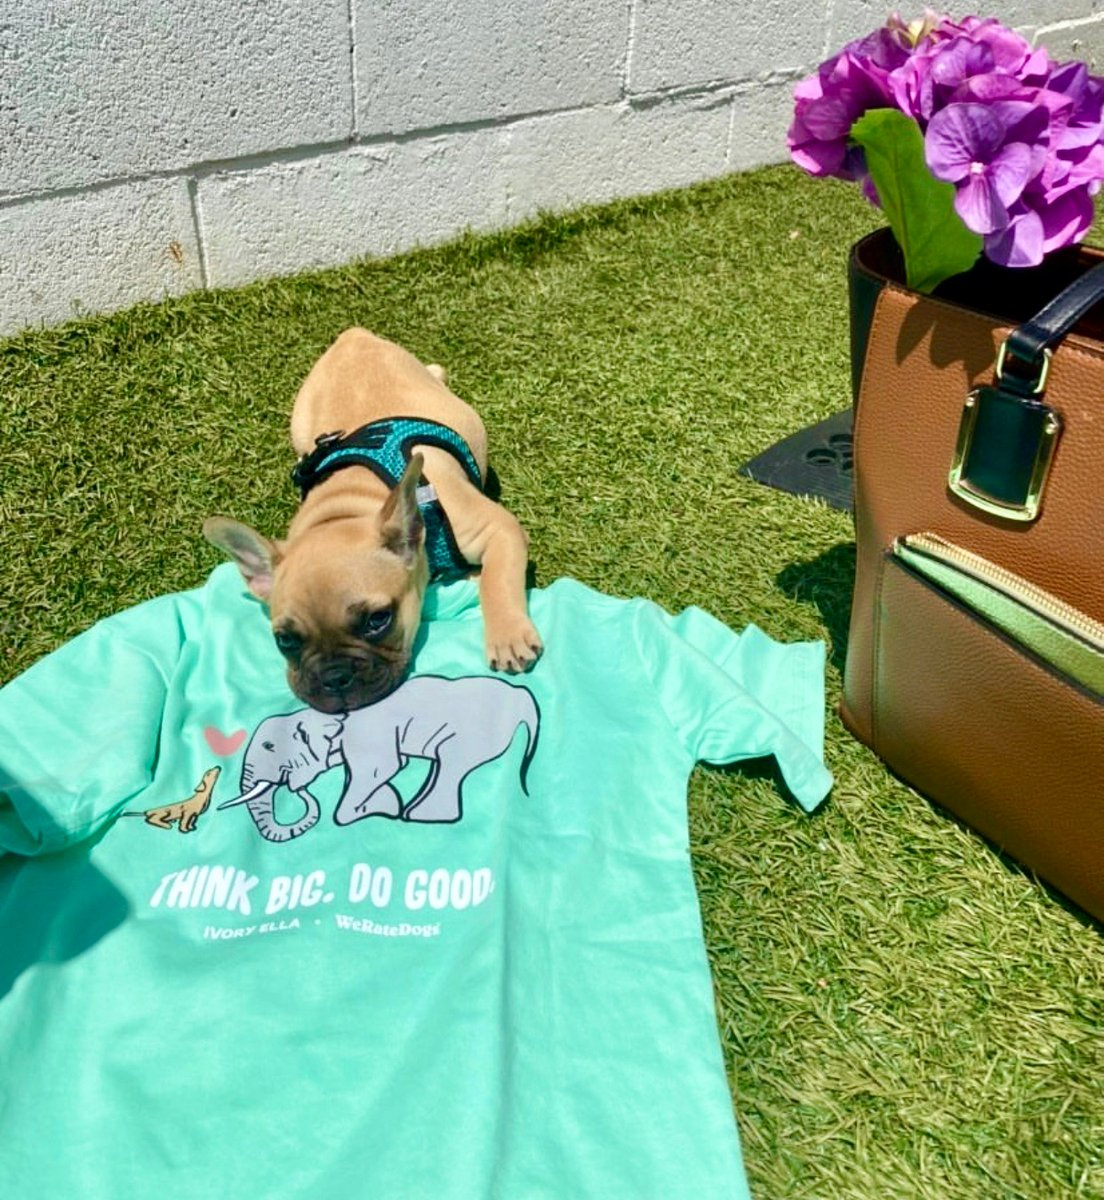 Everyone meet Harper and our NEW Ella Regular Fit WeRateDogs Tee 🐶100% of net proceeds from sales will be donated to @heartsandbonesrescue a non-profit network of volunteers who collaborate to find shelter dogs their forever homes 🐘💕@weratedogs ivoryella.com/pages/a-hope-c…